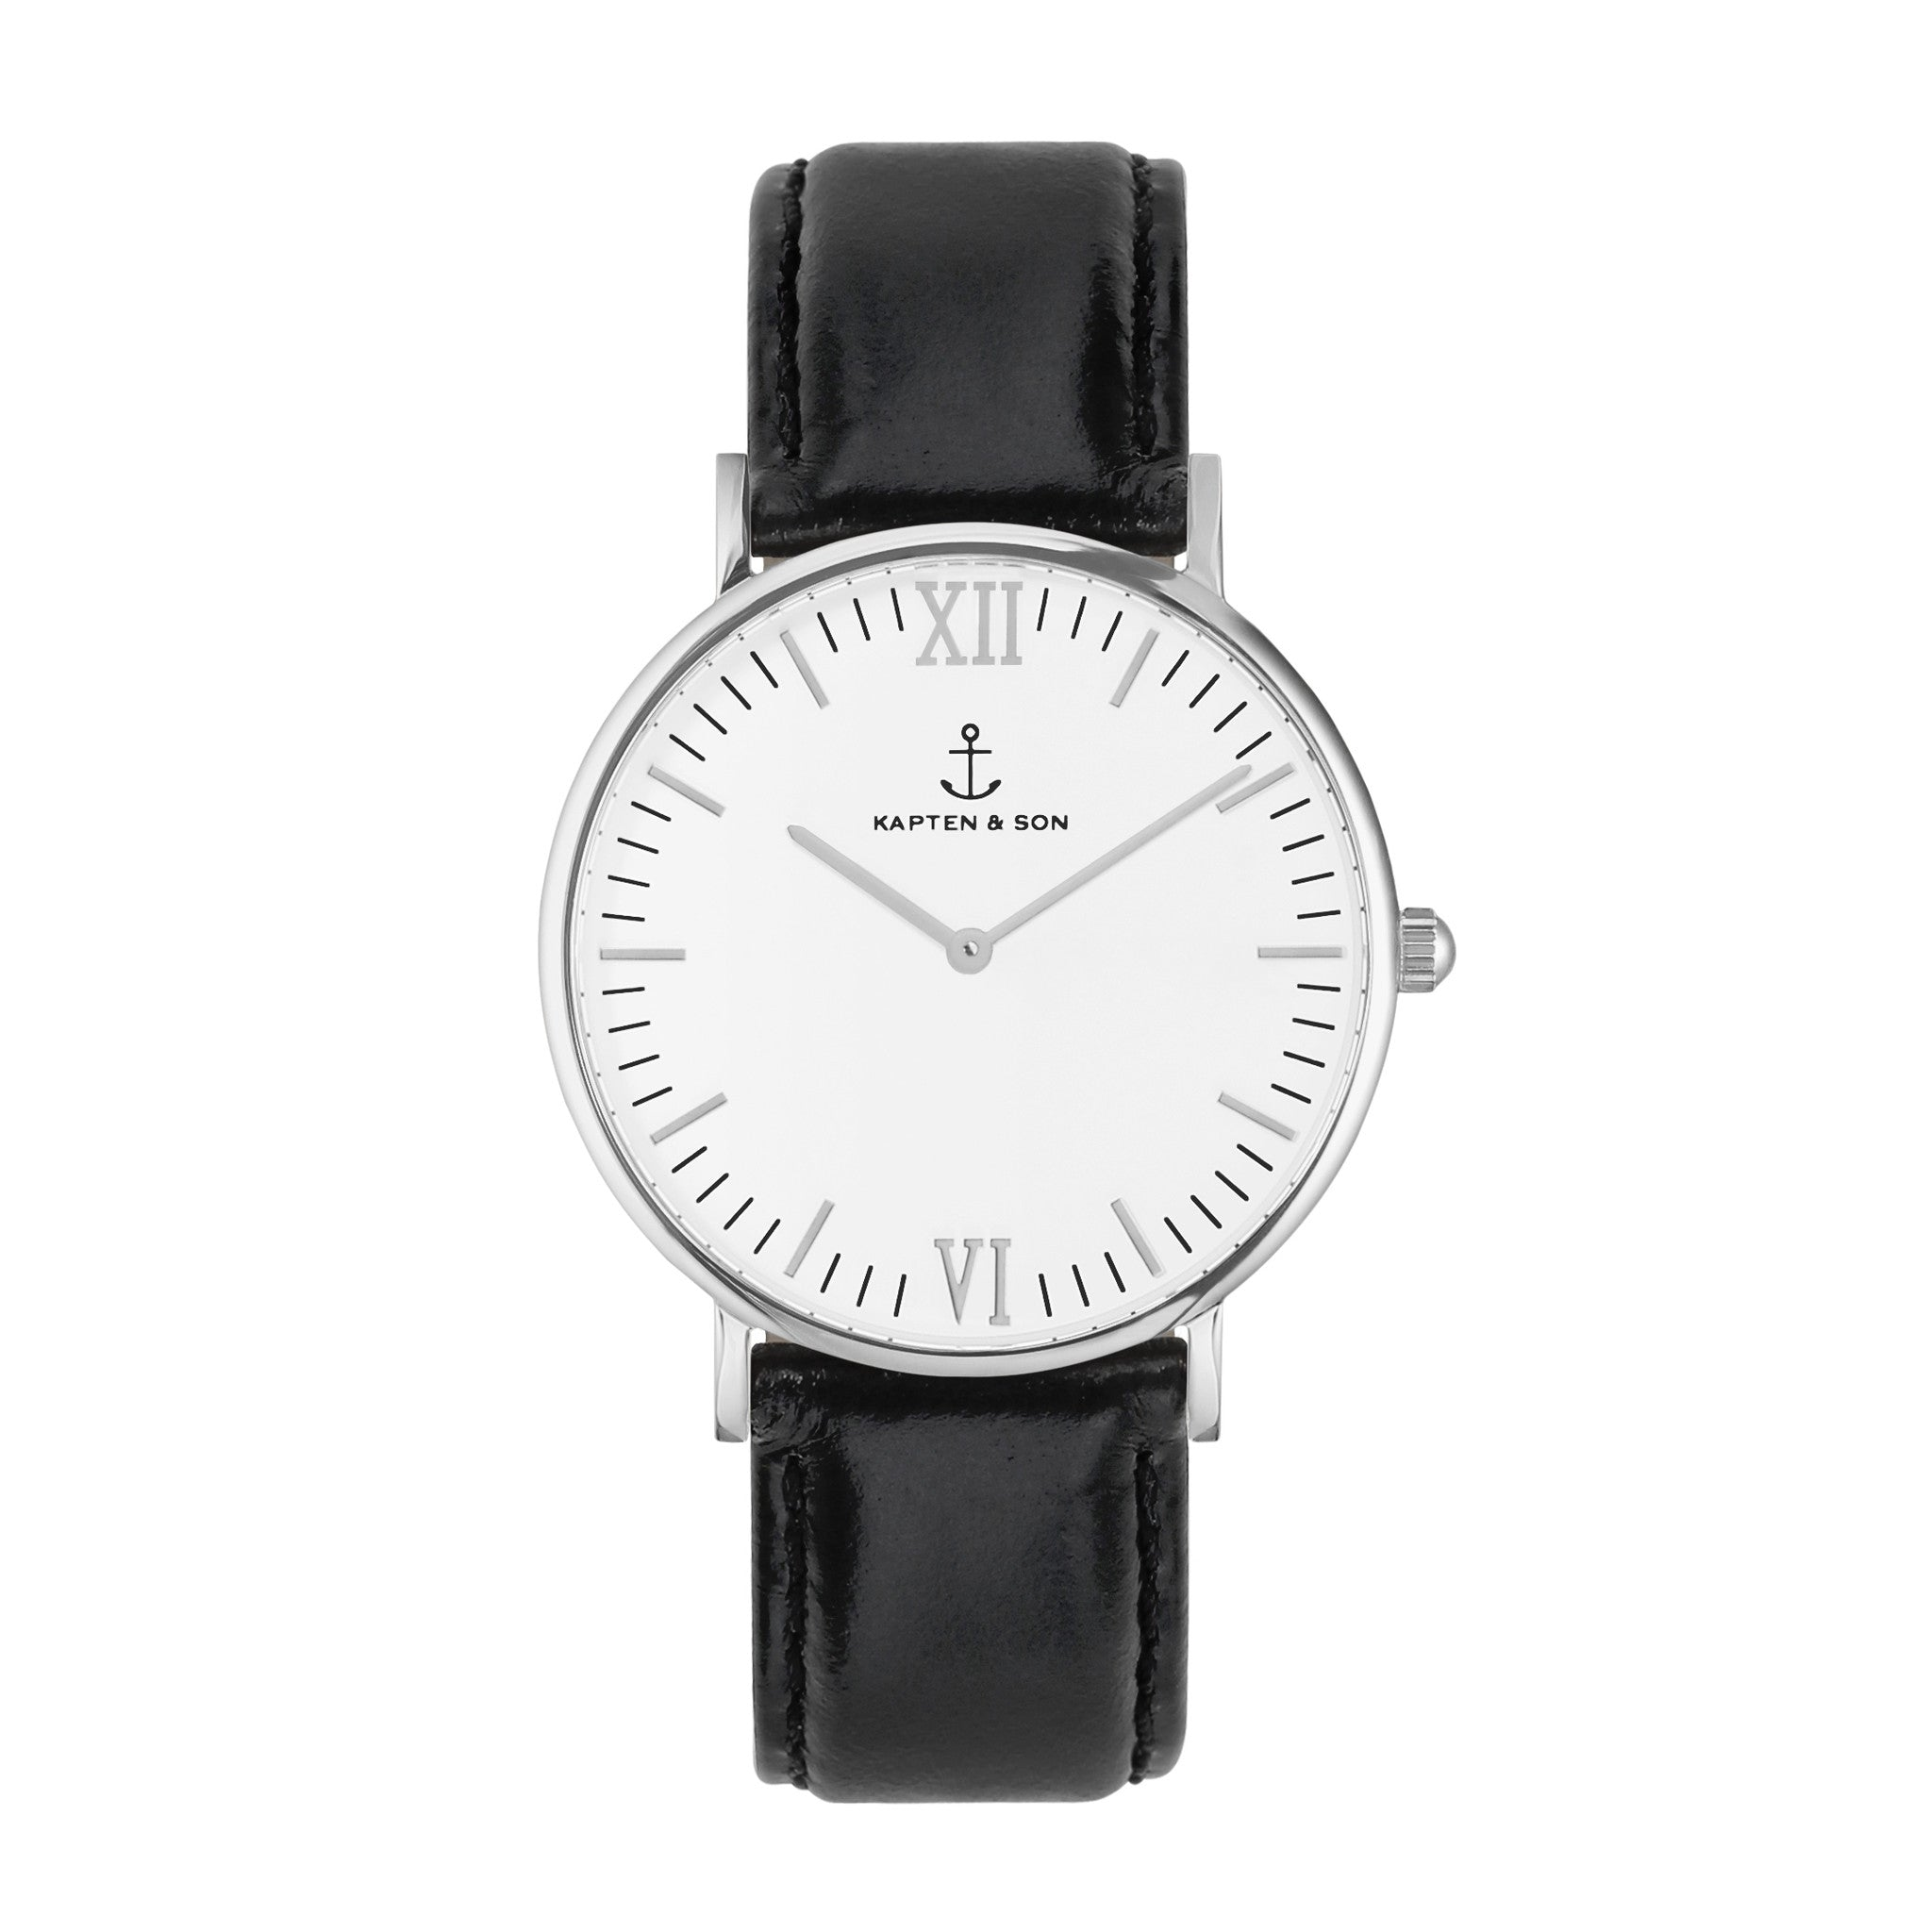 coveted by elegant black style watches leather women grant watch ladies unisex this mid an has bebk collections s and tokyobay accessories